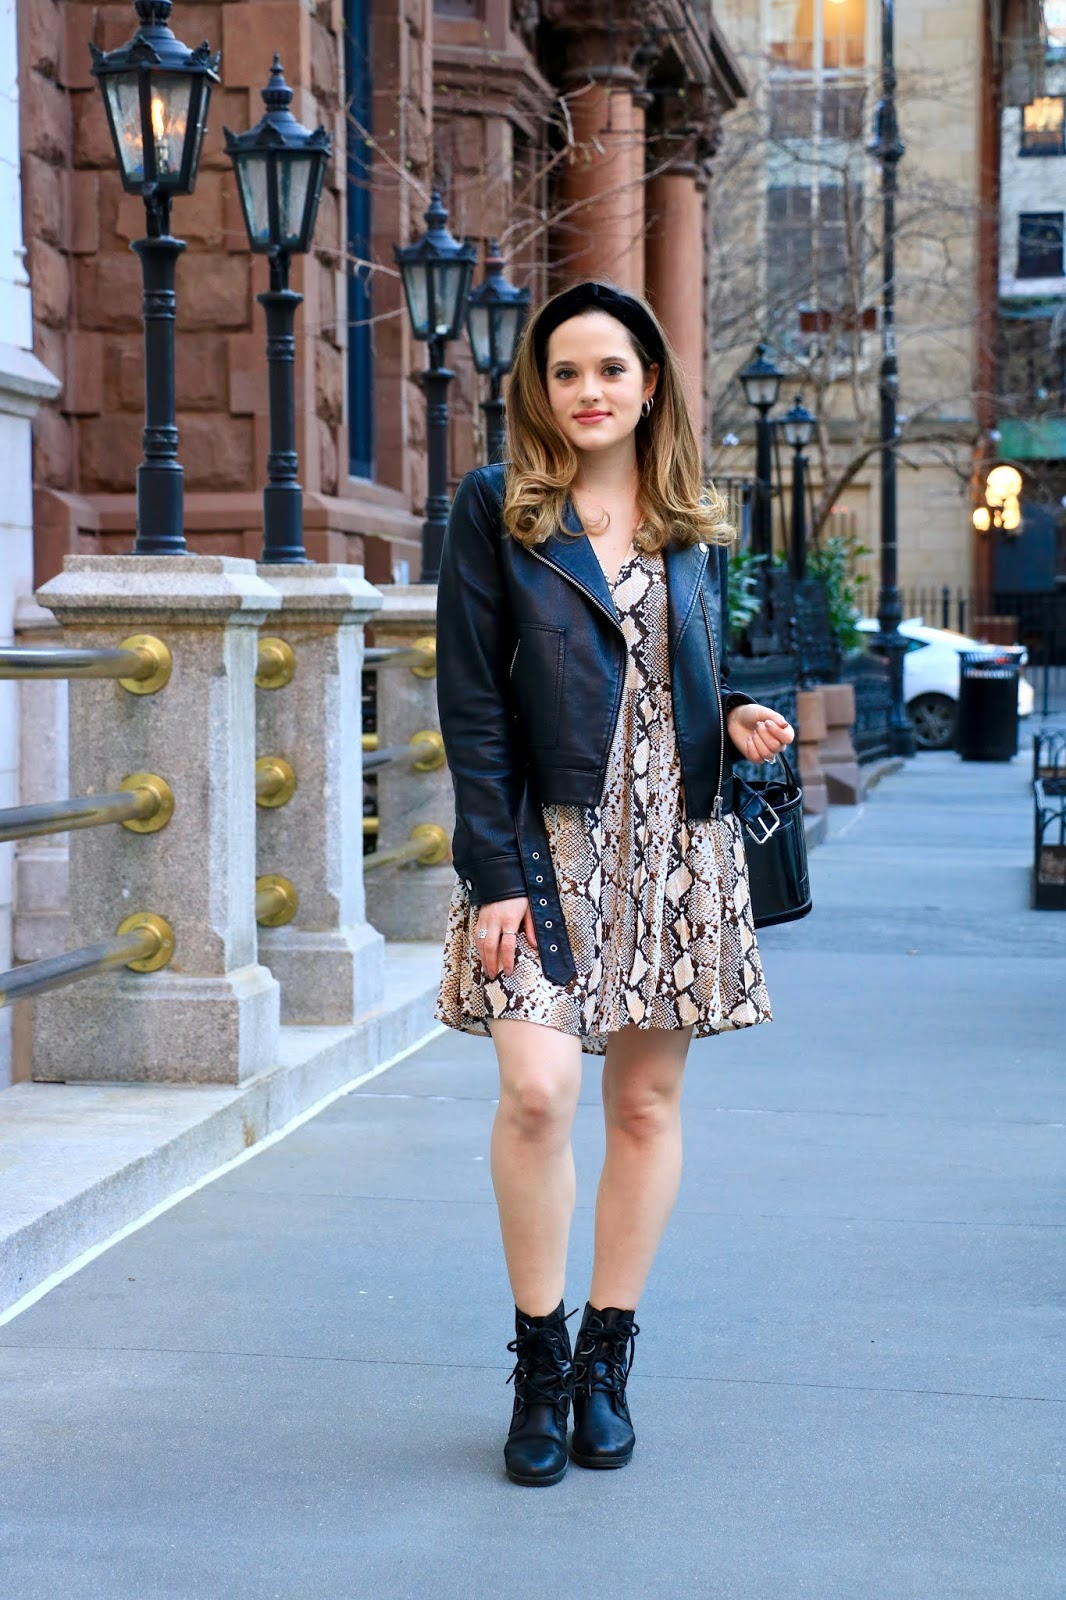 Nyc fashion blogger Kathleen Harper wearing 2020 spring fashion trends.